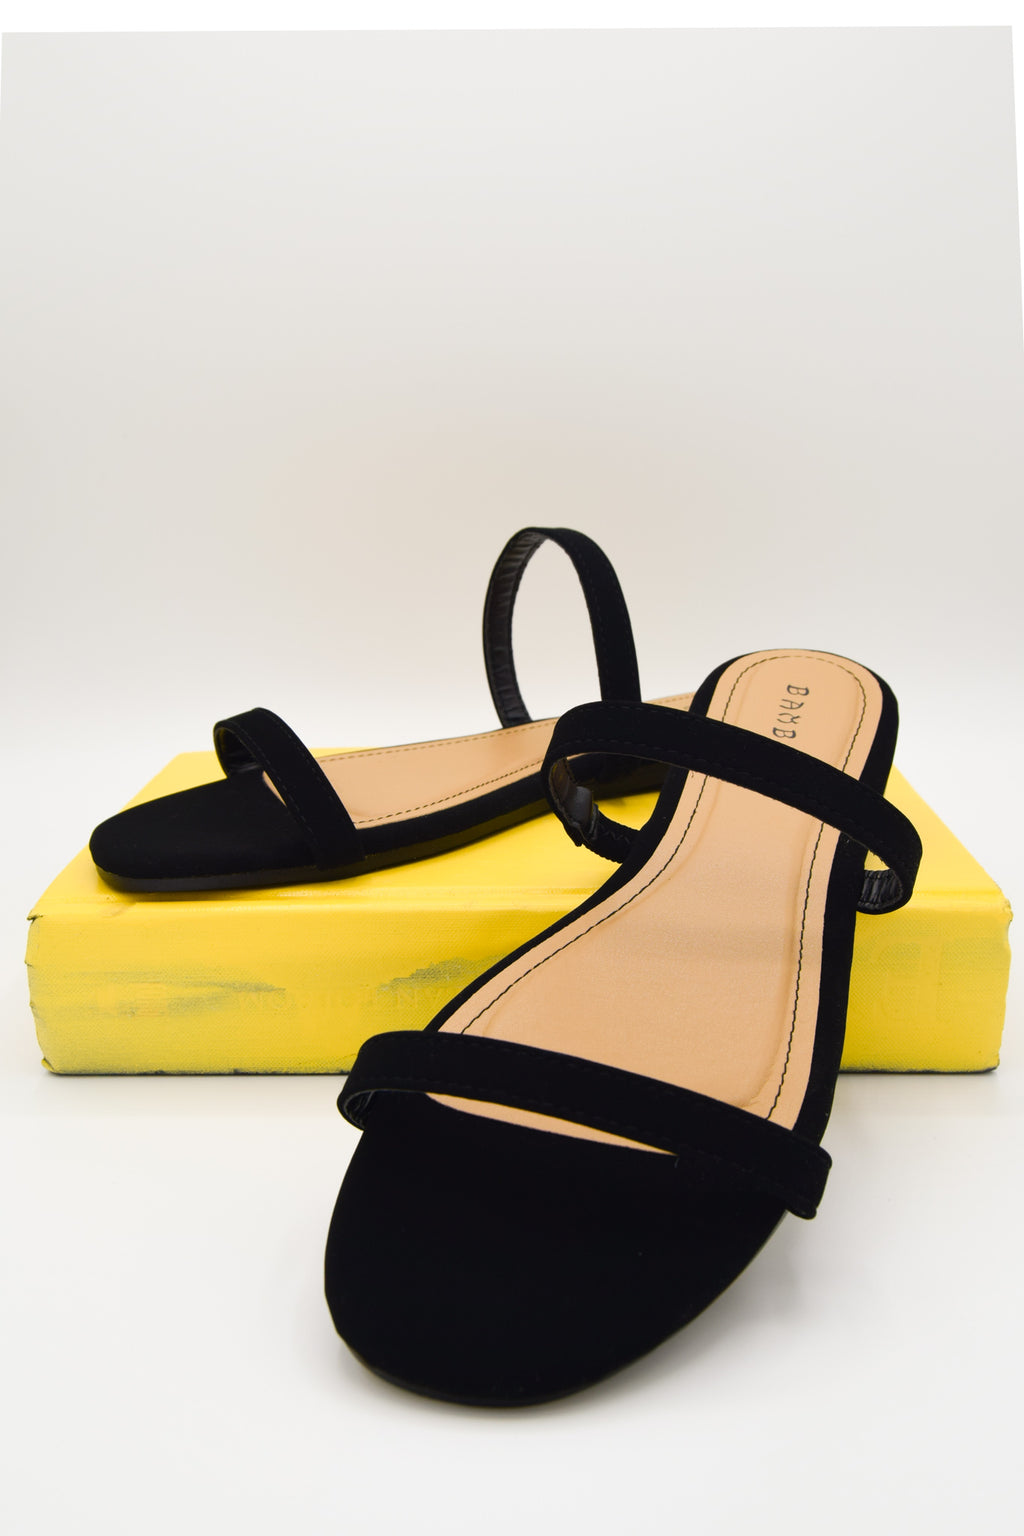 Simple As That Black Simple Strap Flat Sandal